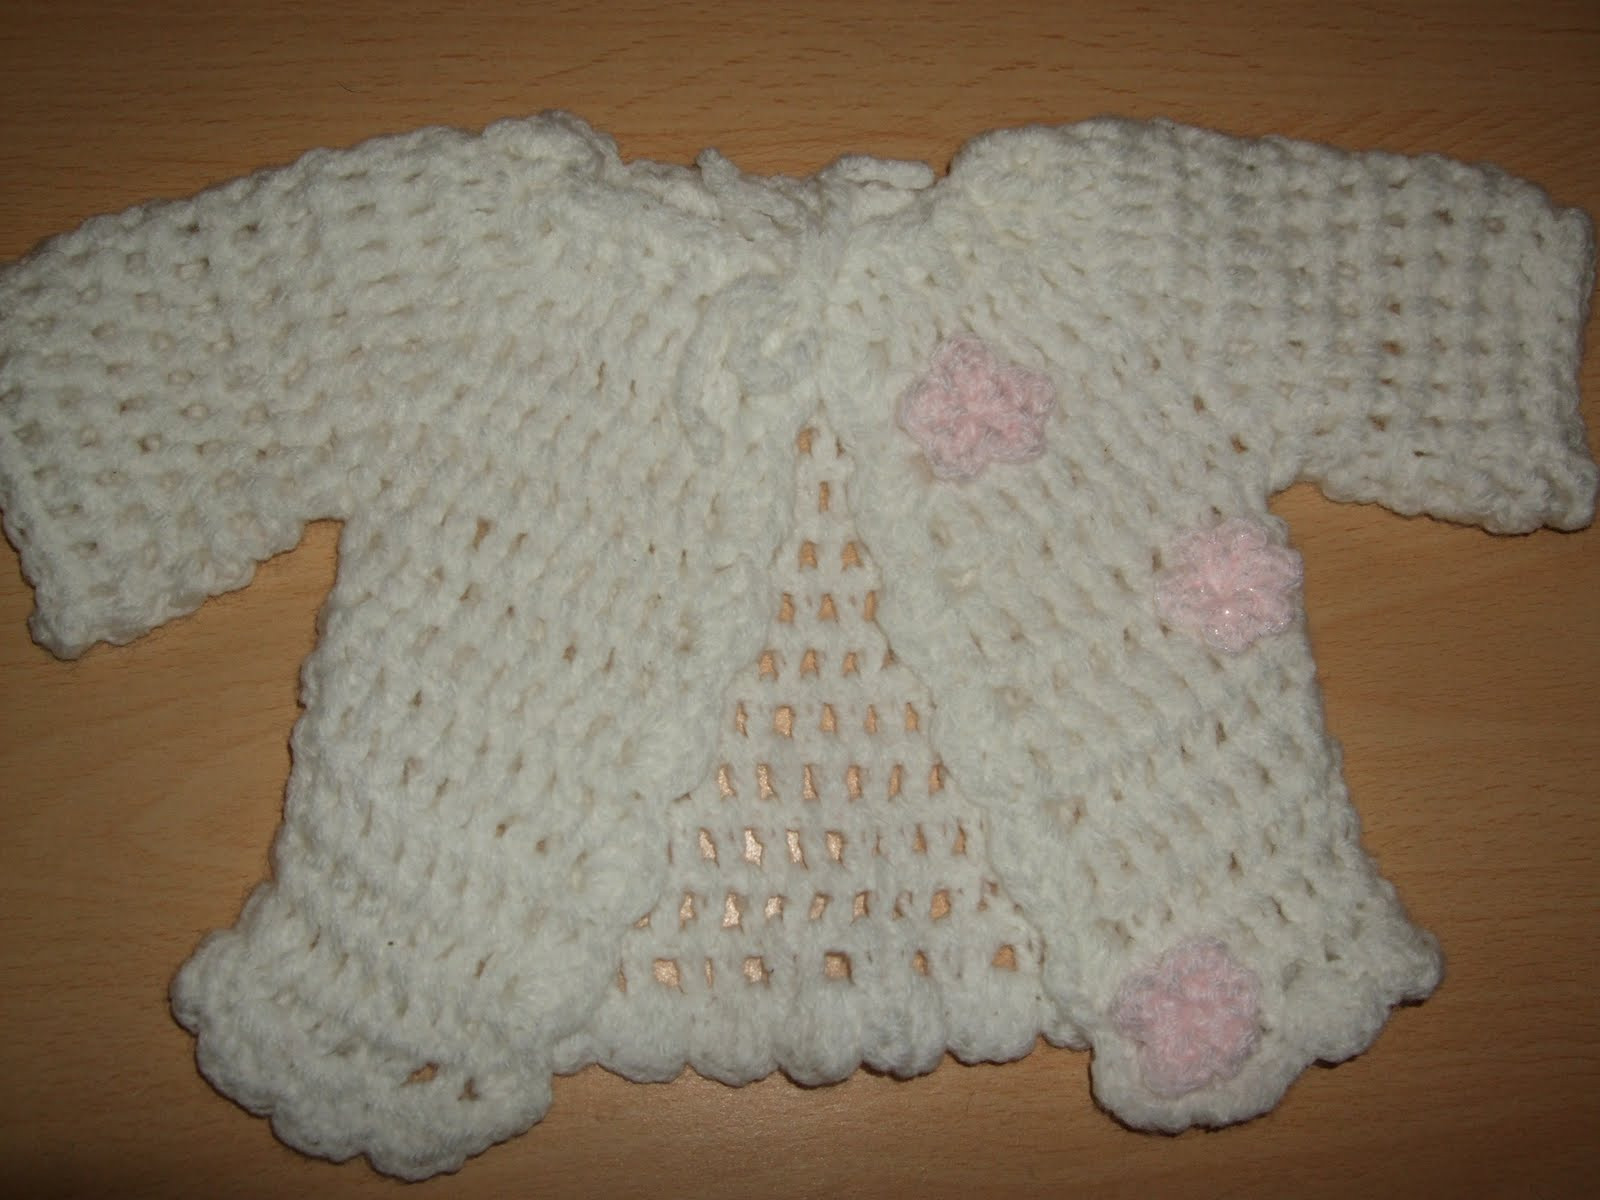 Crochet Baby Clothing Fresh Channelle S Crochet Creations Project Carol Crochet Baby Of Amazing 44 Ideas Crochet Baby Clothing